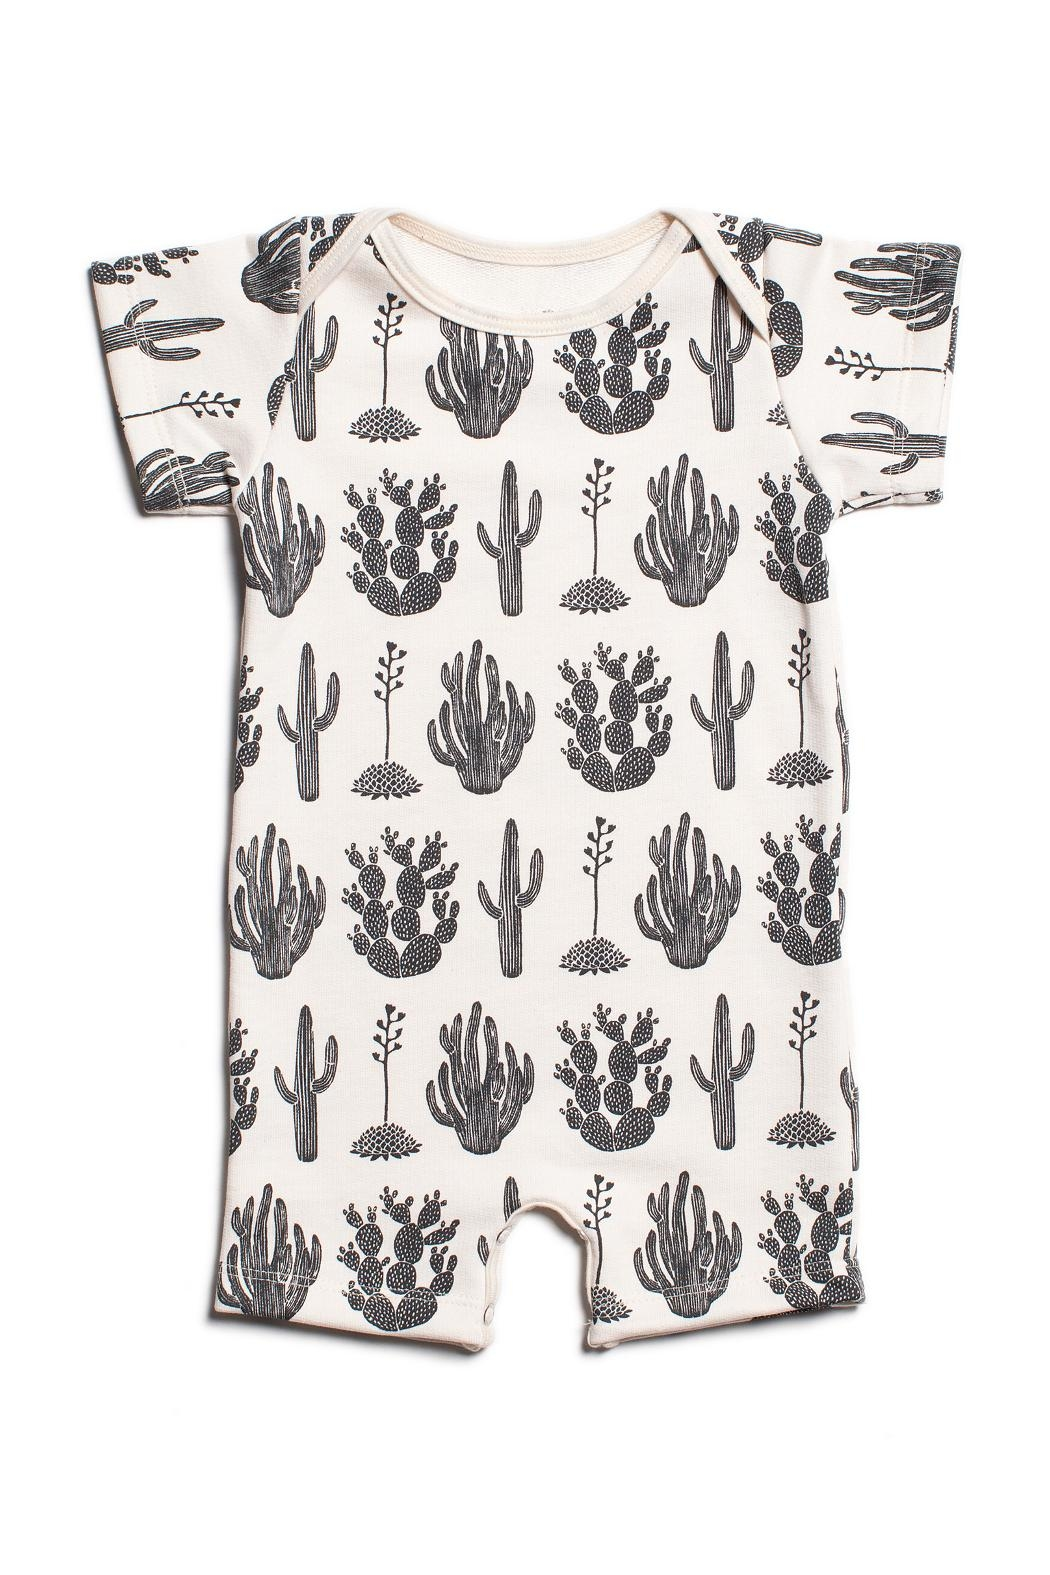 Winter Water Factory Cactus Short One-Piece - Main Image